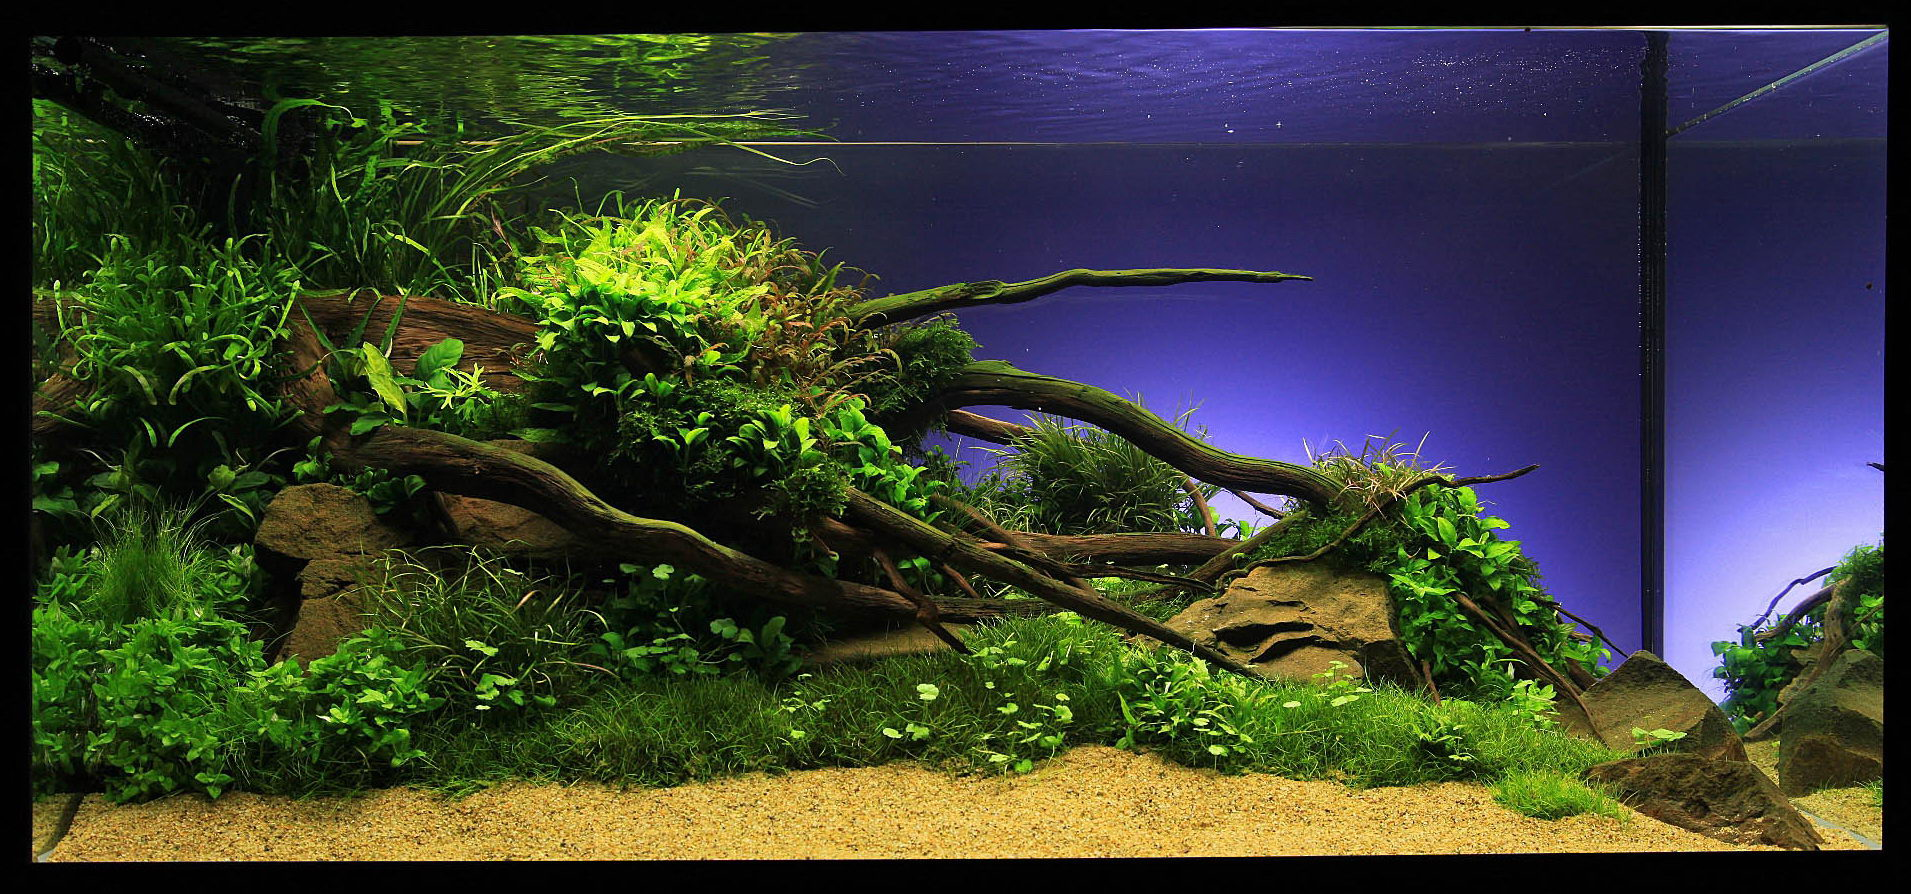 Marcel dykierek and aquascaping aqua rebell for Aquarium design